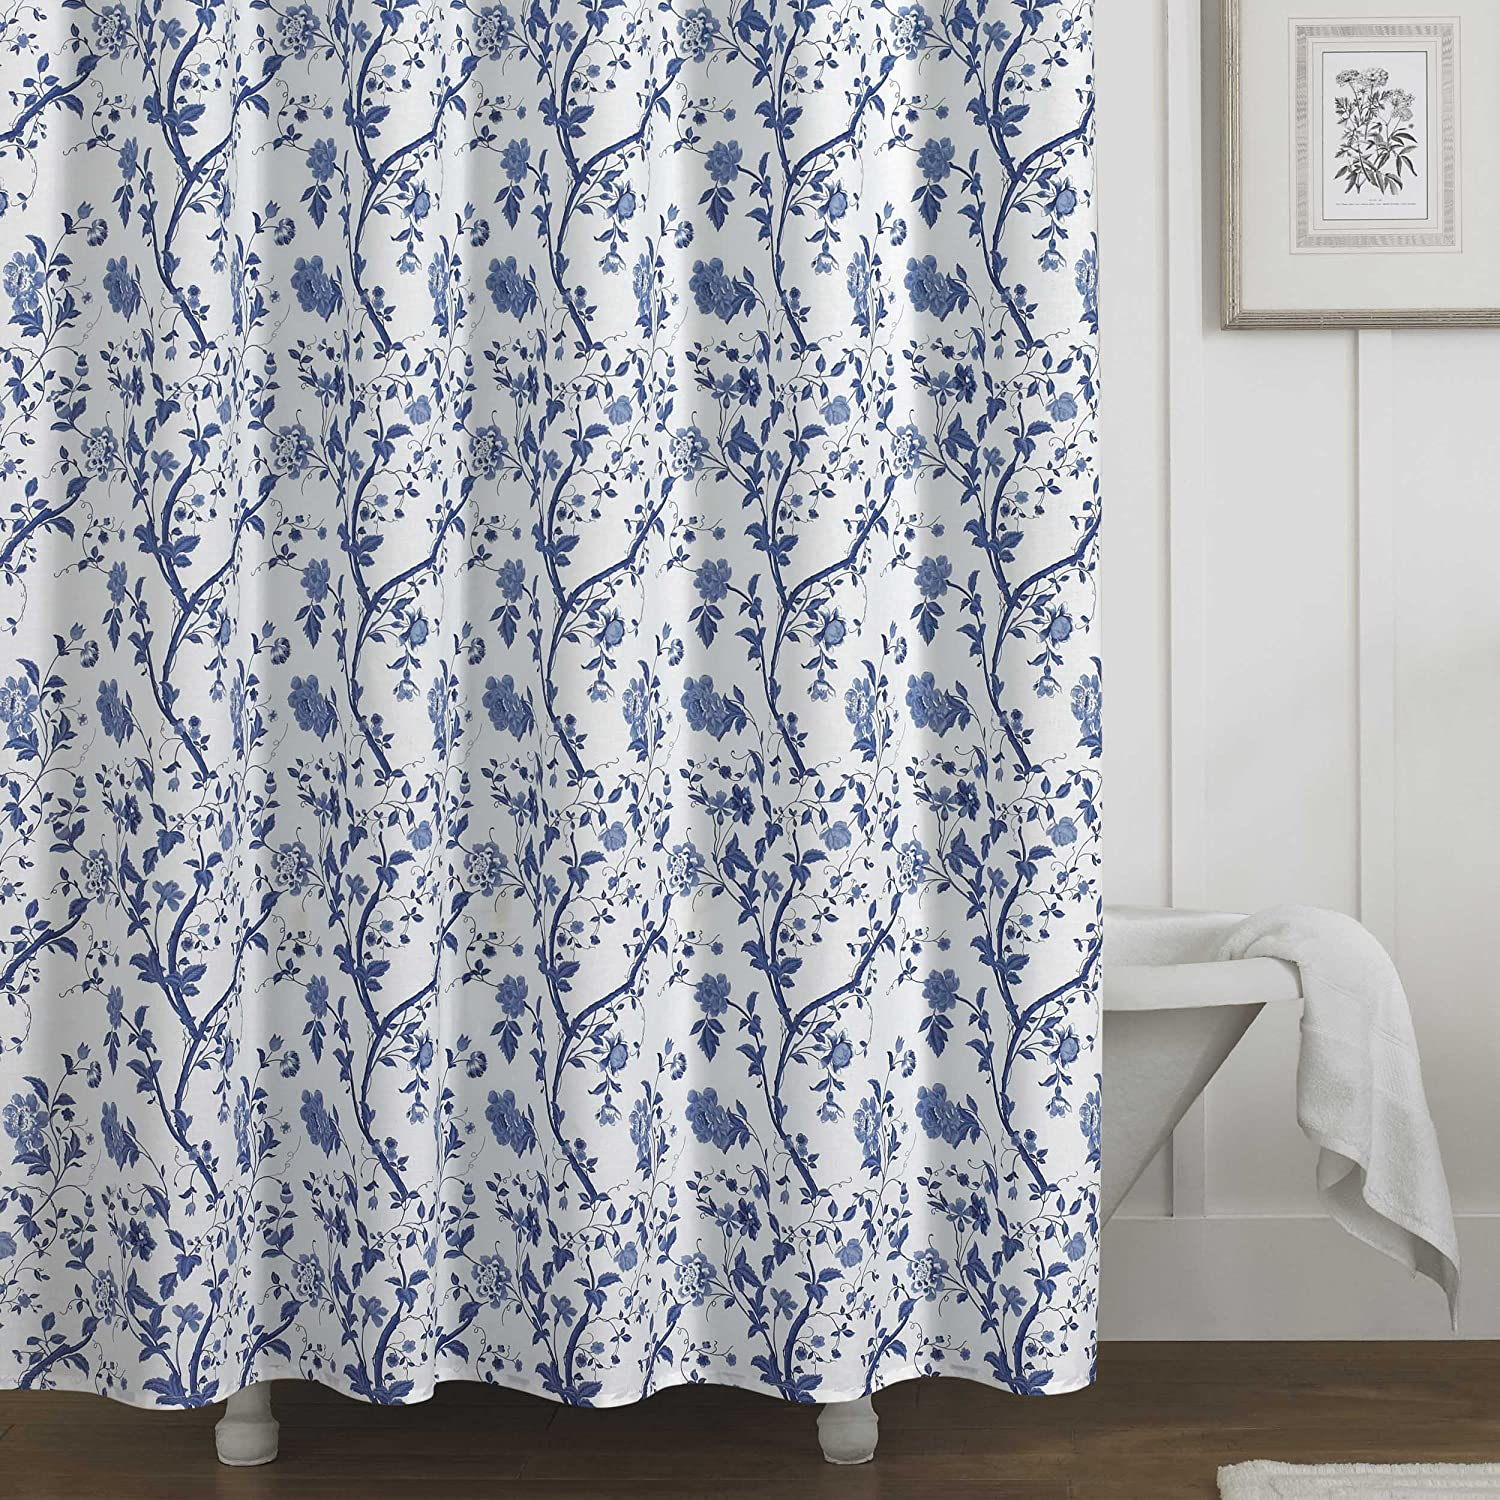 Laura Ashley Charlotte Shower Curtain, Blue